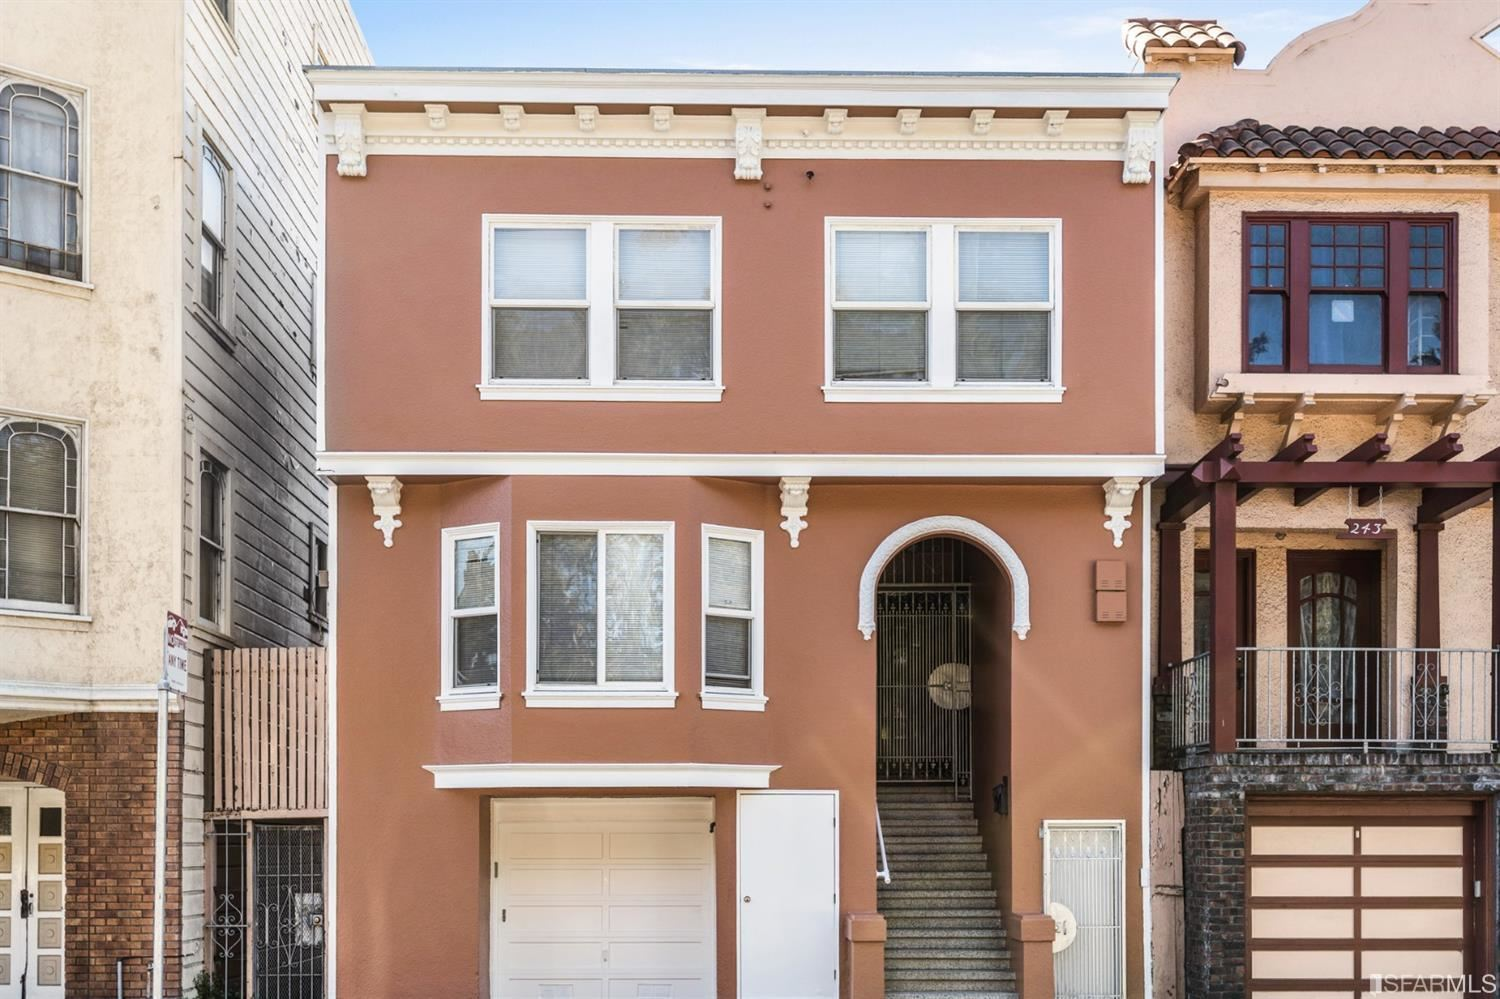 233 235 Lincoln Way #2 Units, San Francisco, CA 94122 - #: 508754